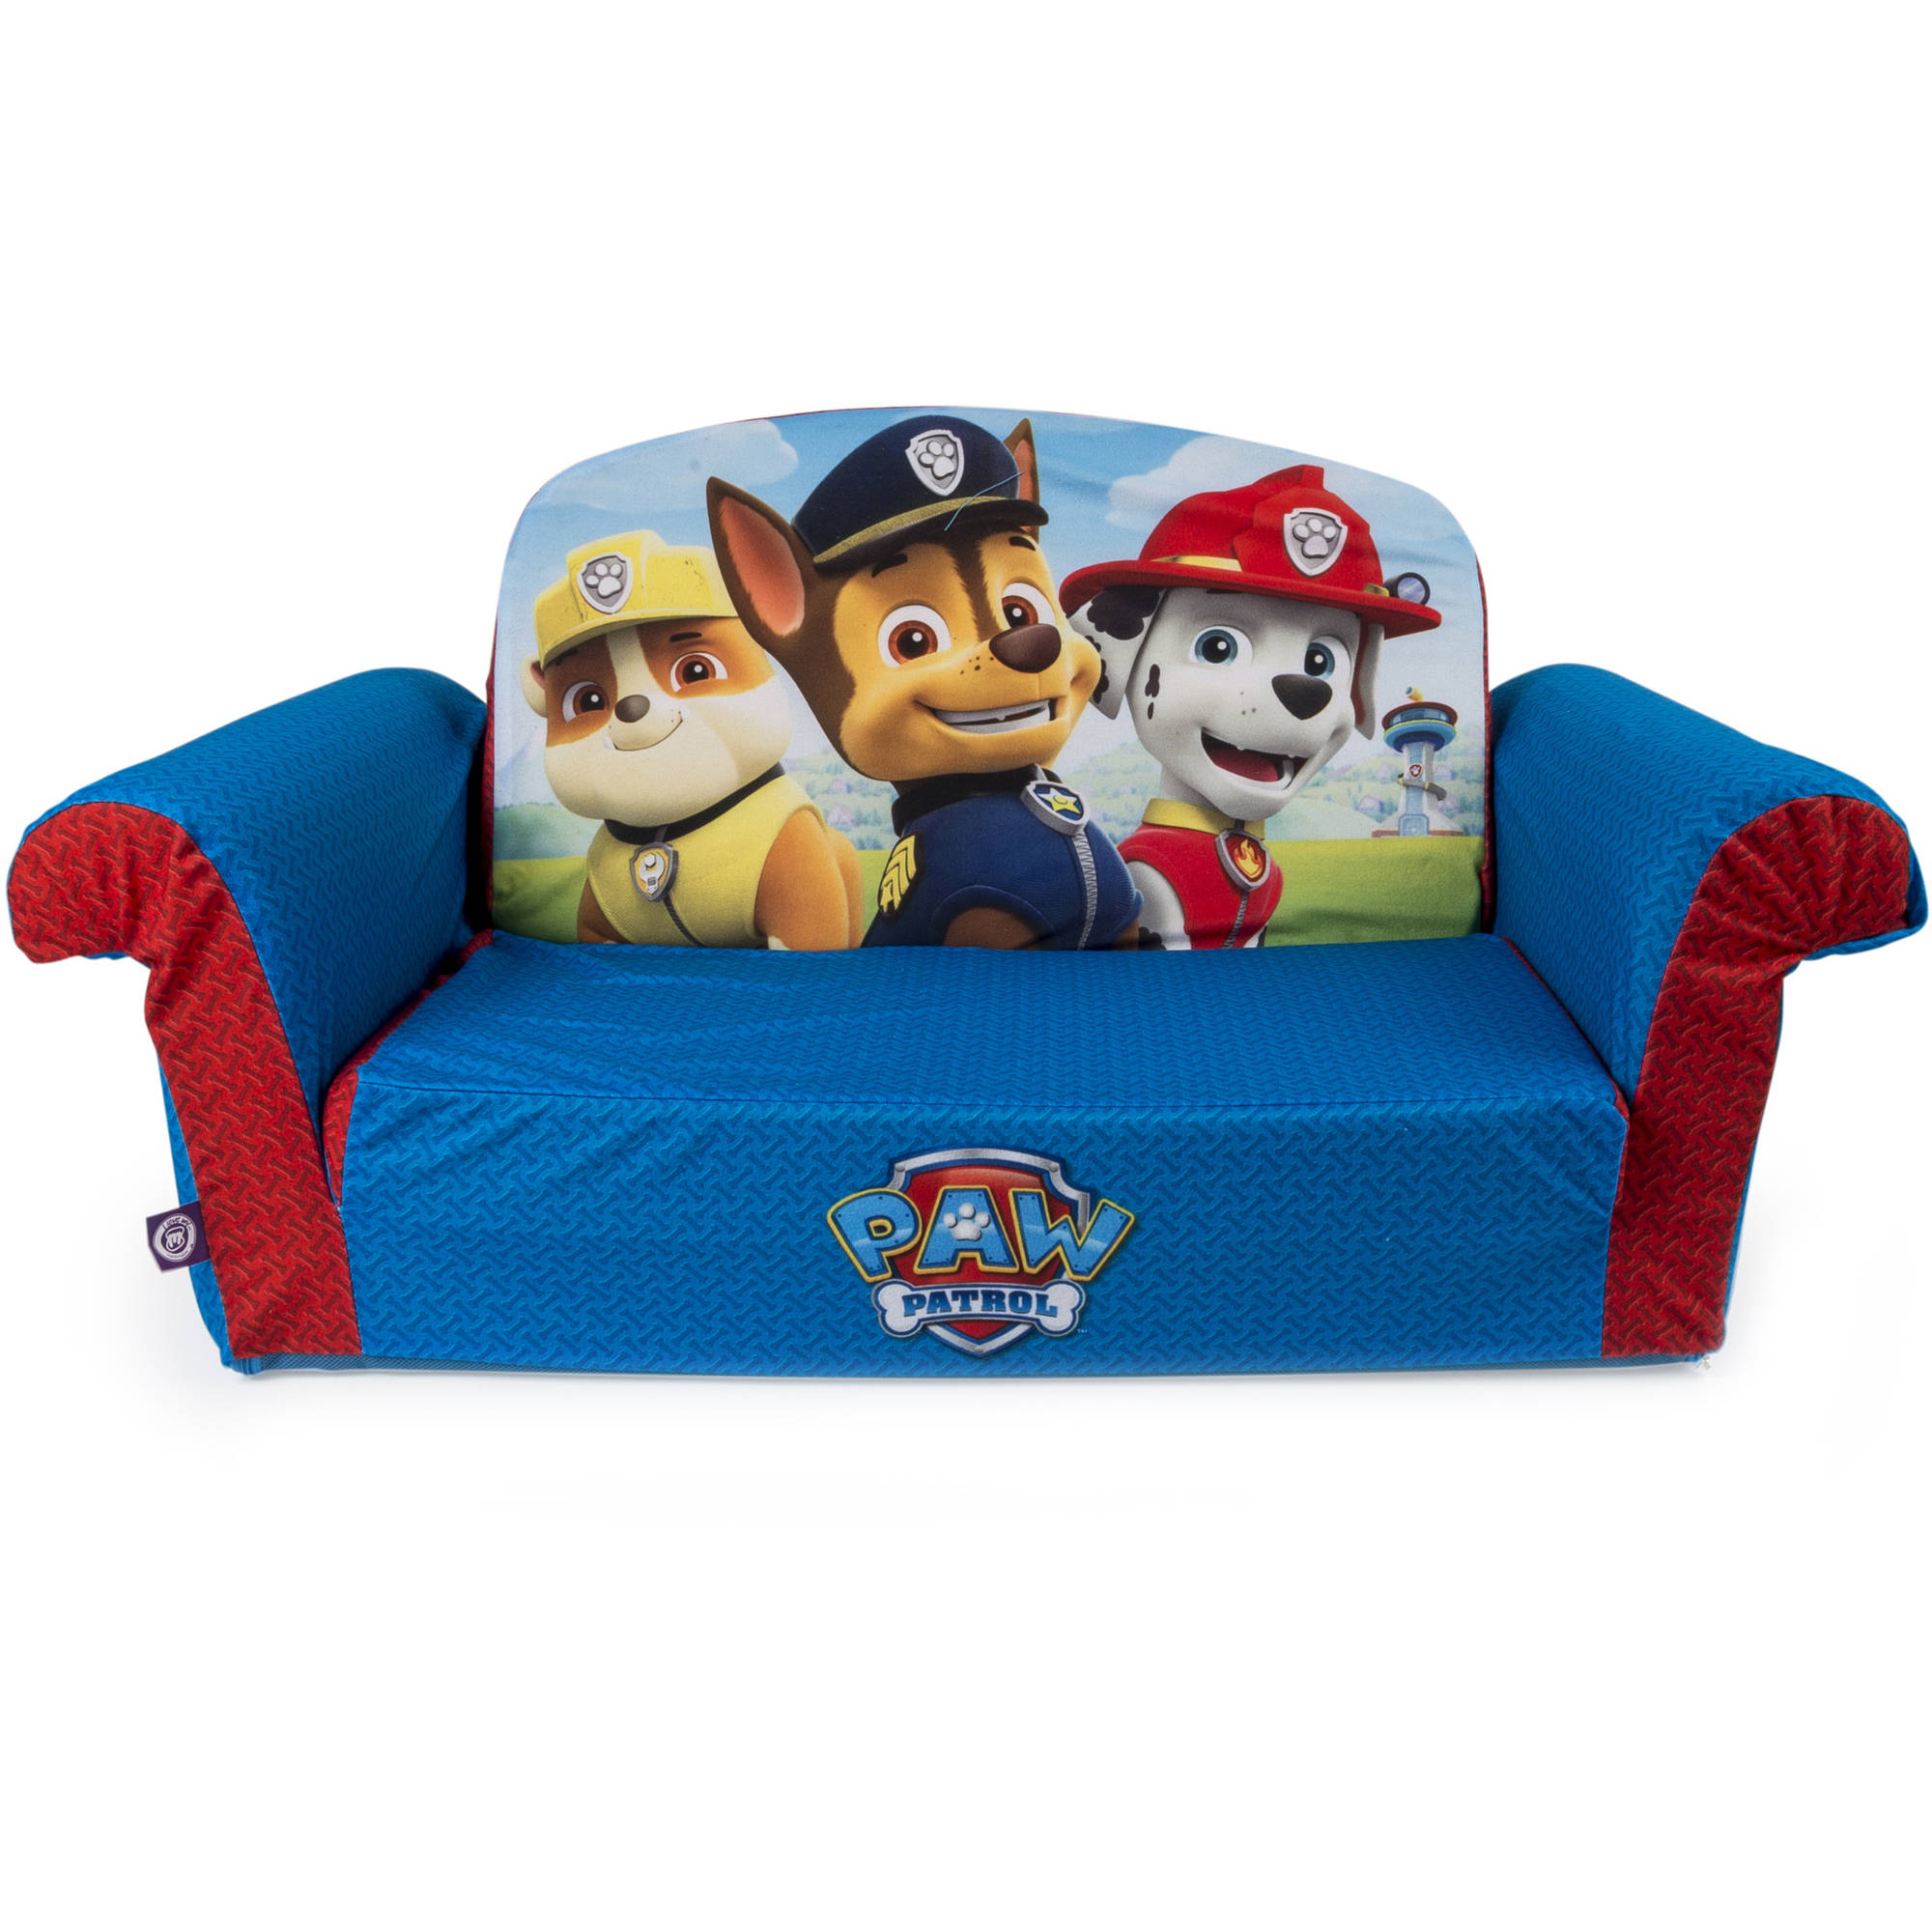 Marshmallow Furniture, Children's 2 in 1 Flip Open Foam Sofa, Nickelodeon Paw Patrol, by... by Marshmallow